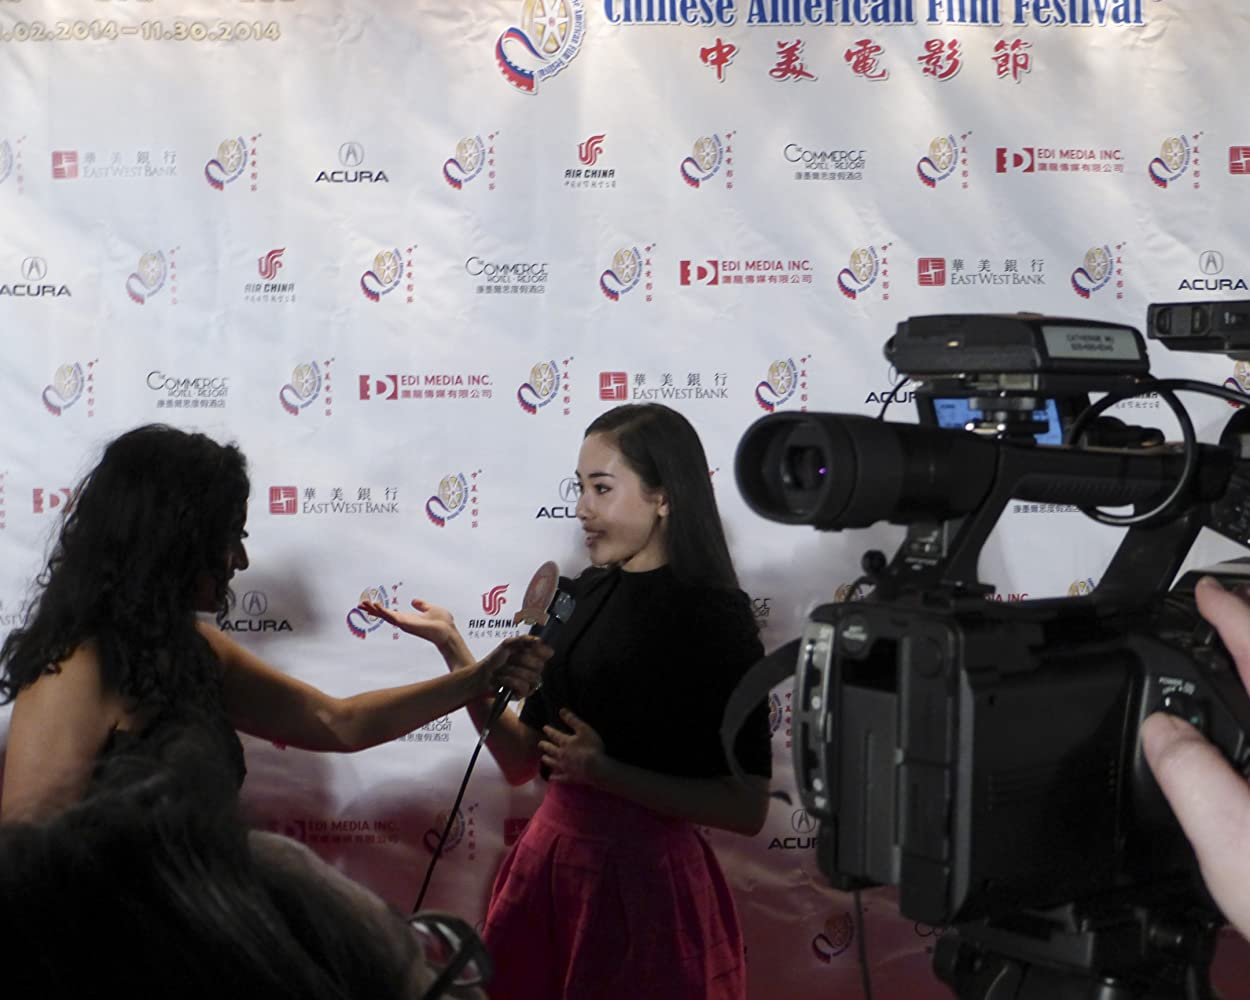 Interview at the Chinese American Film Festival, Los Angeles, November, 2014.